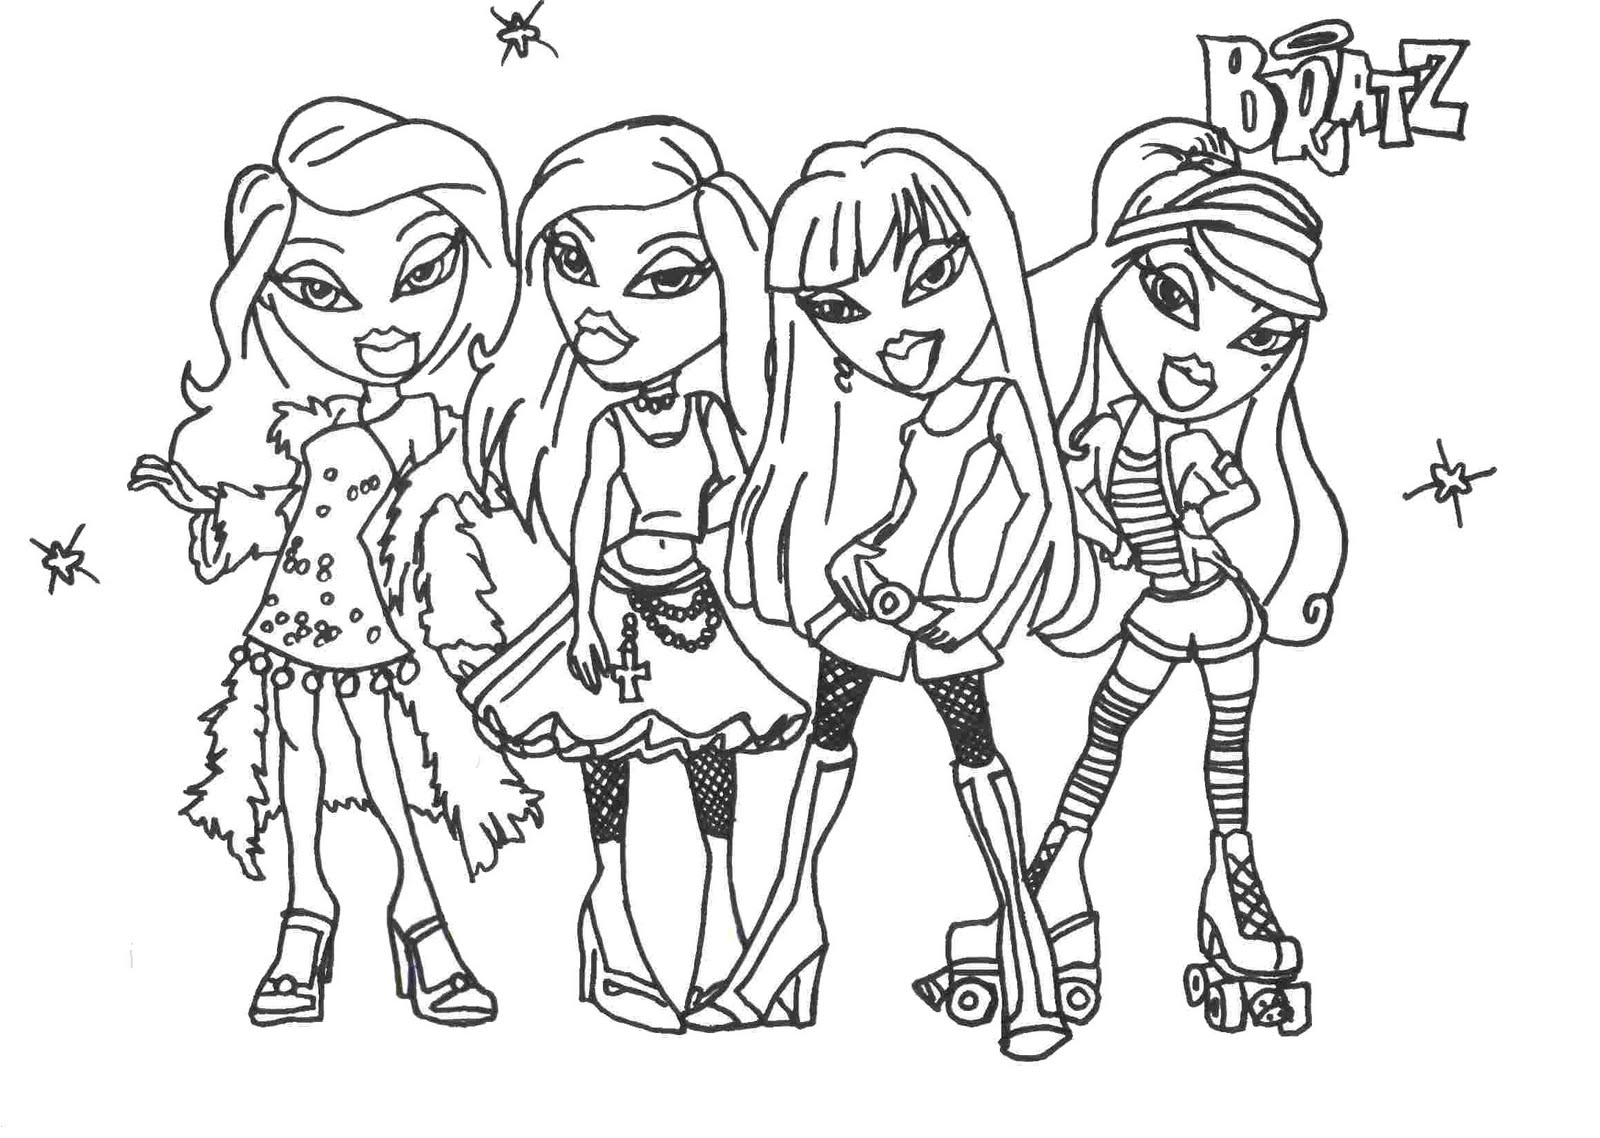 bratz coloring book pages - photo #19